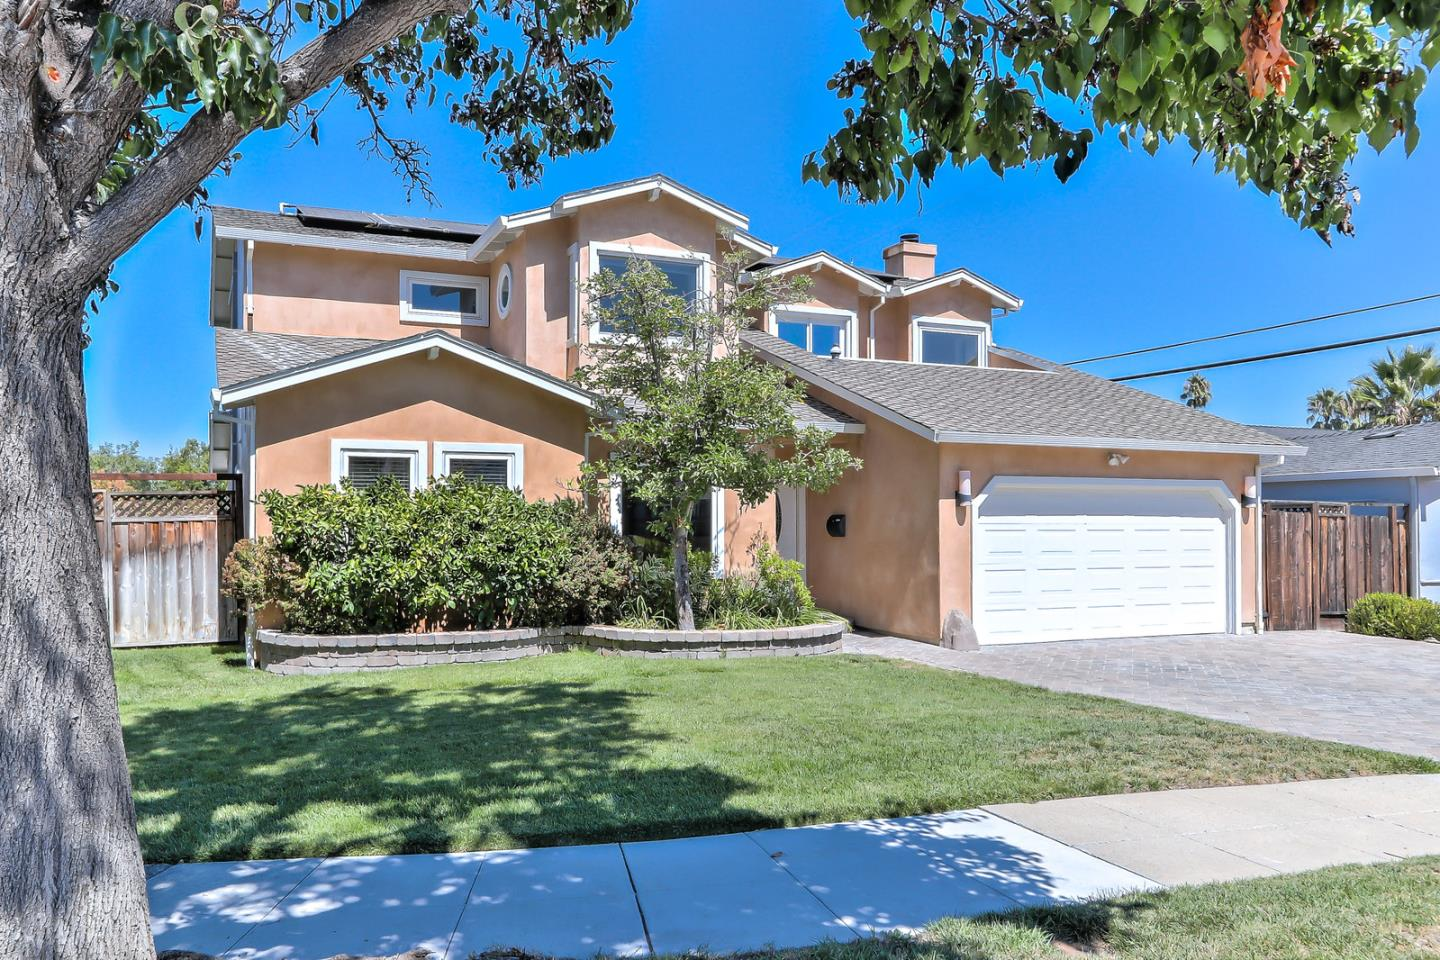 1721 Canna Lane San Jose, CA 95124 - MLS #: ML81722493